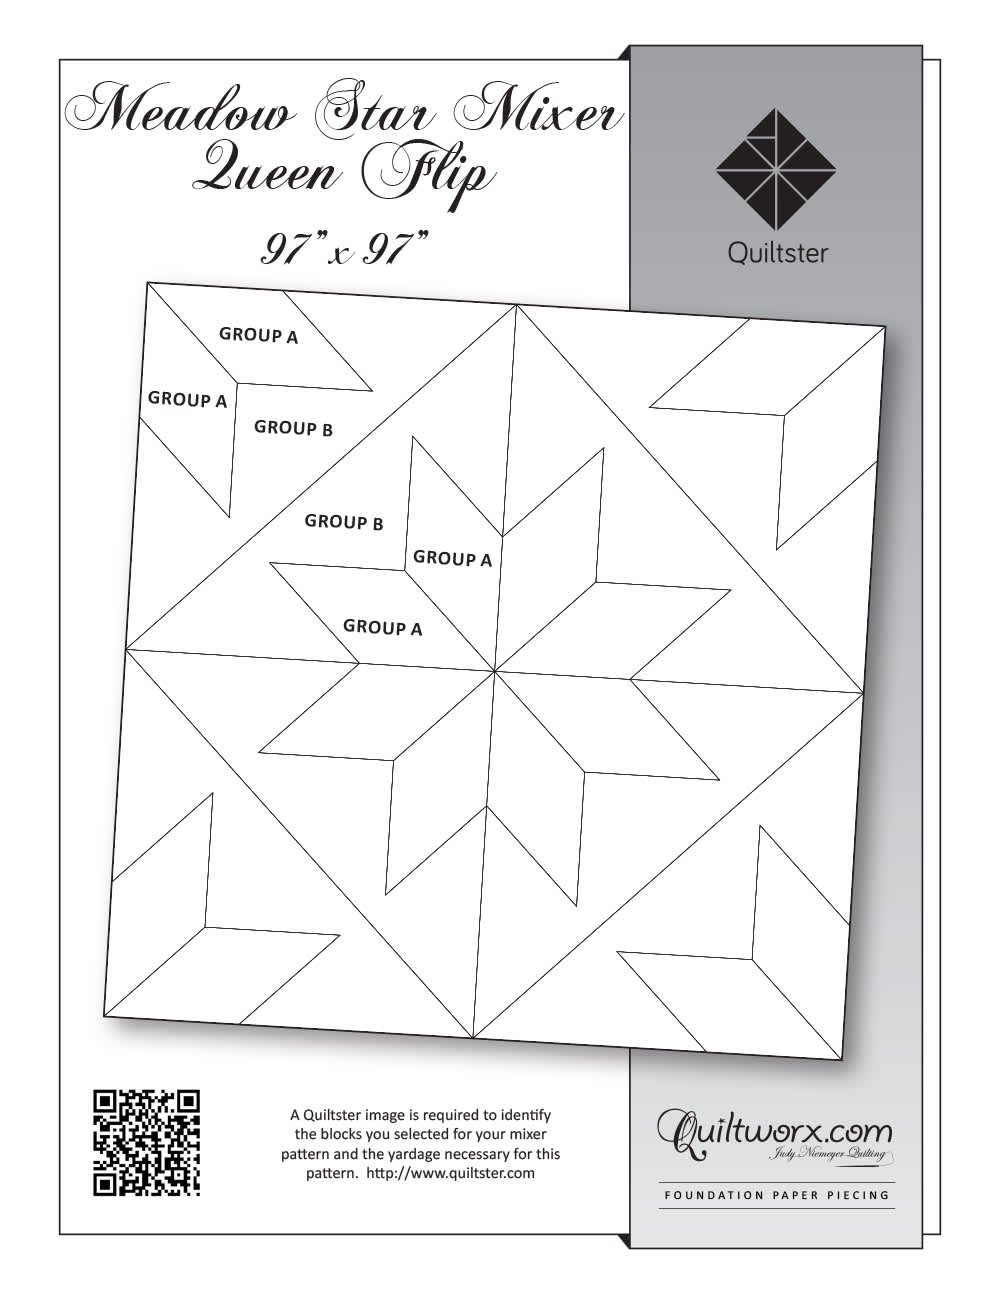 Meadow Star Queen Flip Mixer Pattern